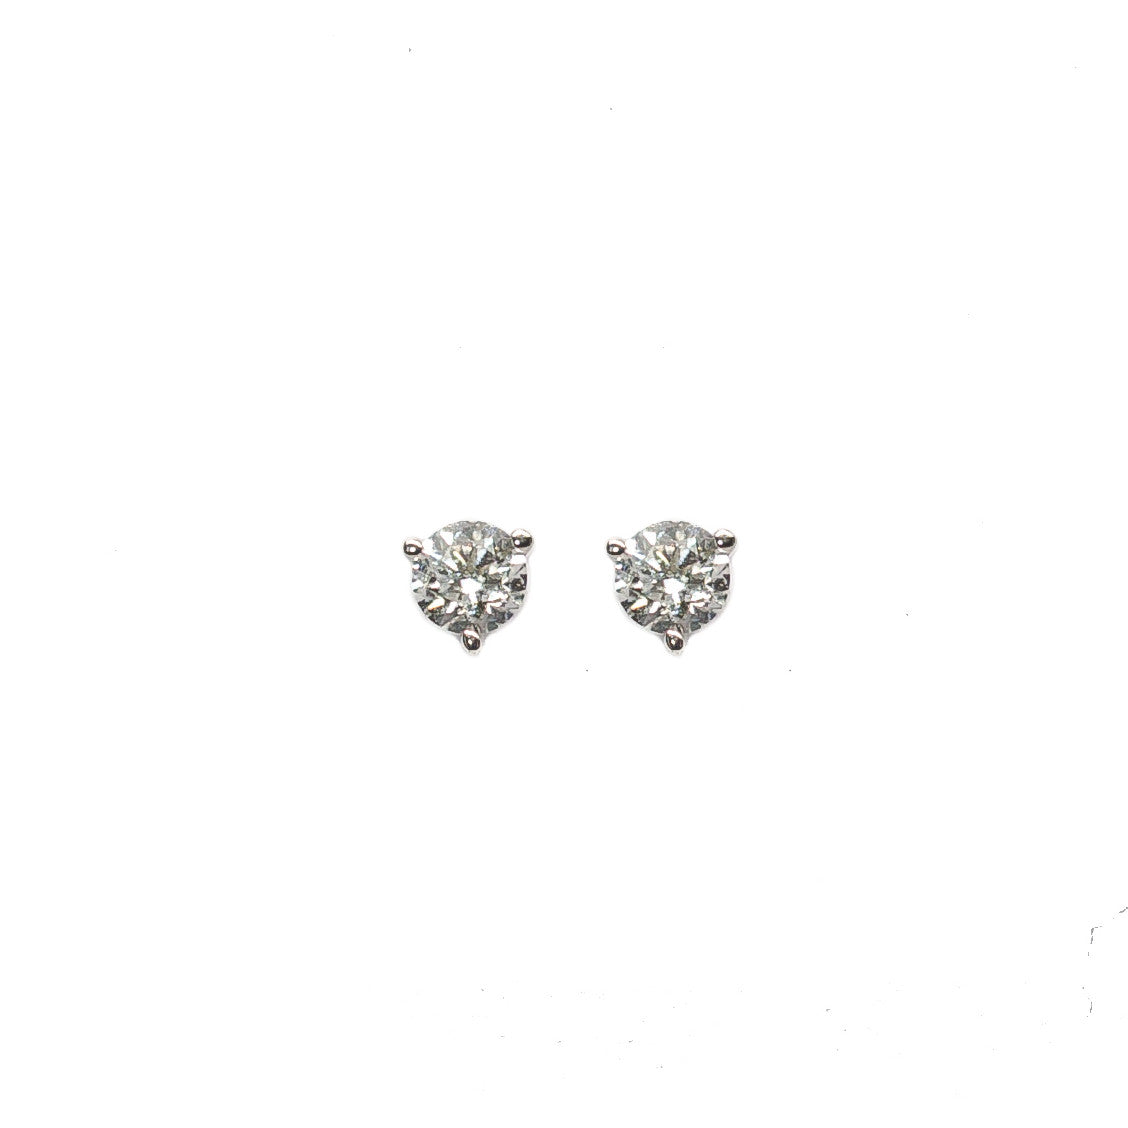 yg to nl gold earring pear prong stud add yellow in the with carat jewelry sku diamond cart studs